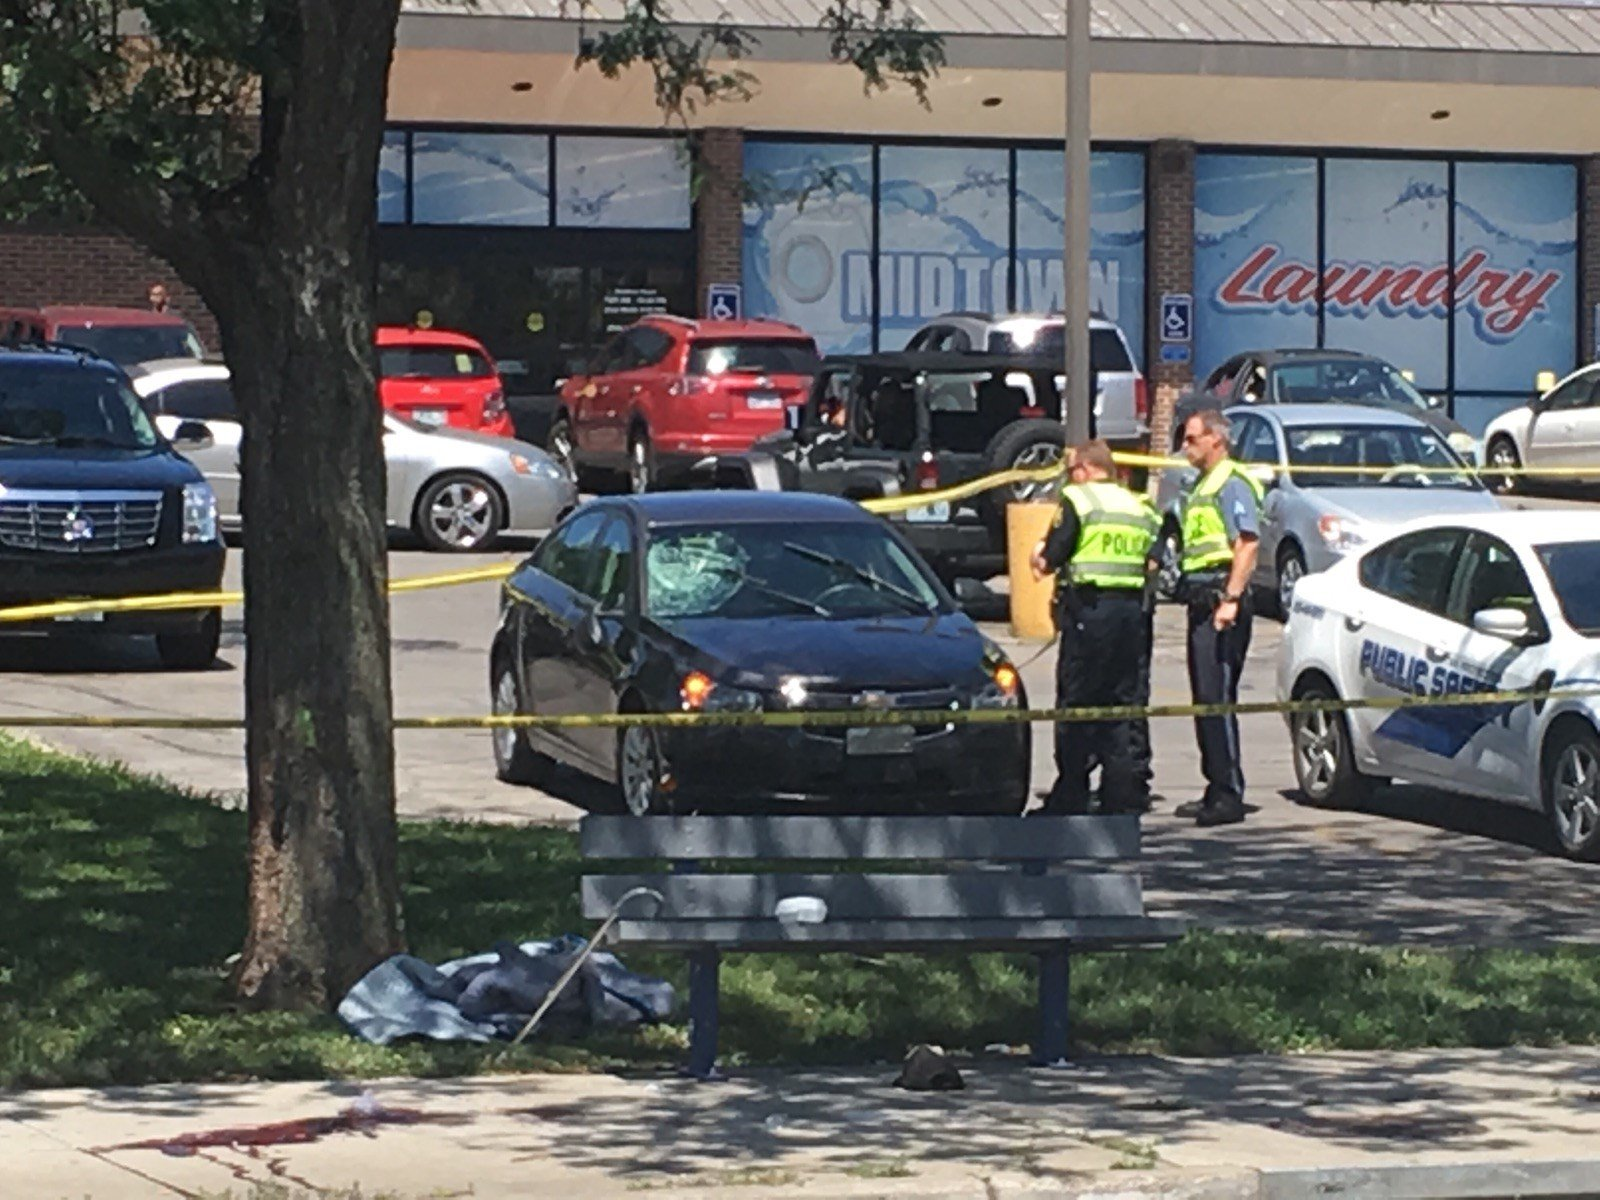 A pedestrian was hit and killed Friday nearMeyer Boulevard and Troost Avenue. (Bill Lindsay/KCTV5 News)